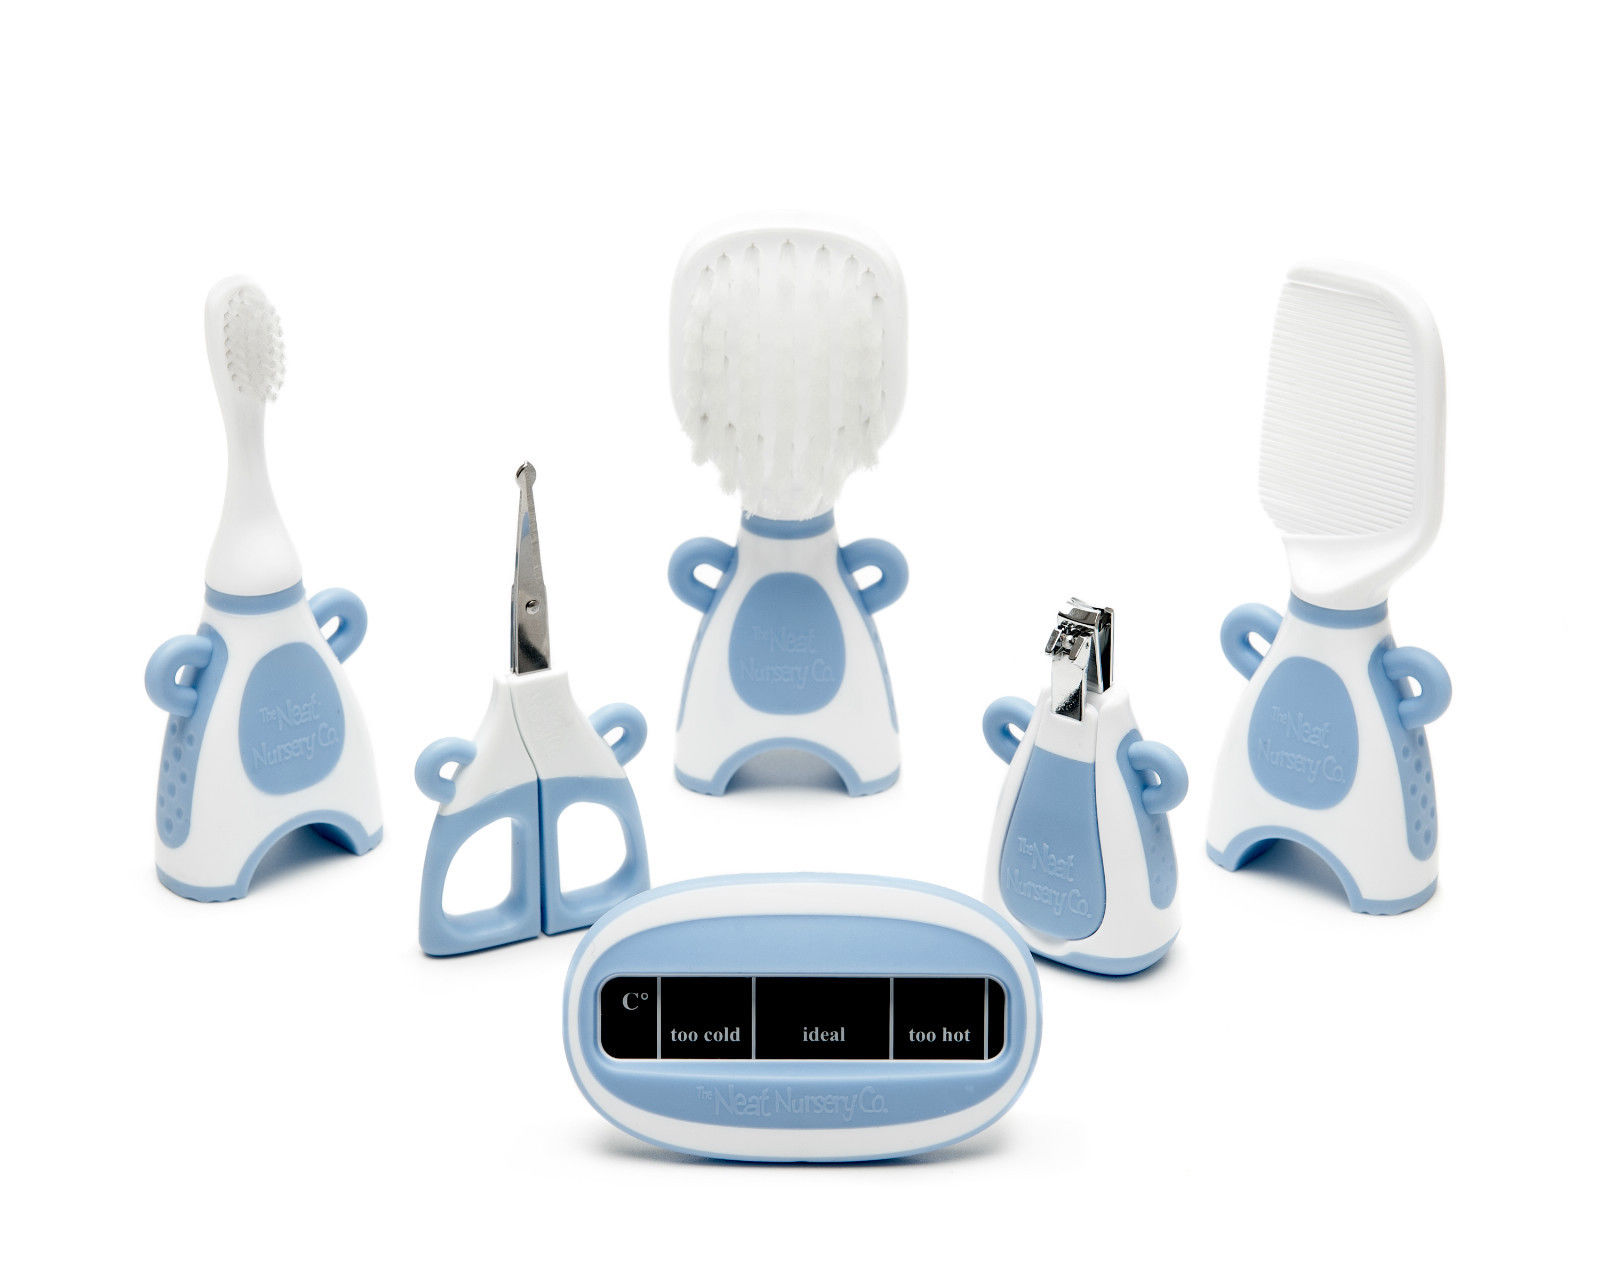 tommee tippee grooming kit thermometer instructions